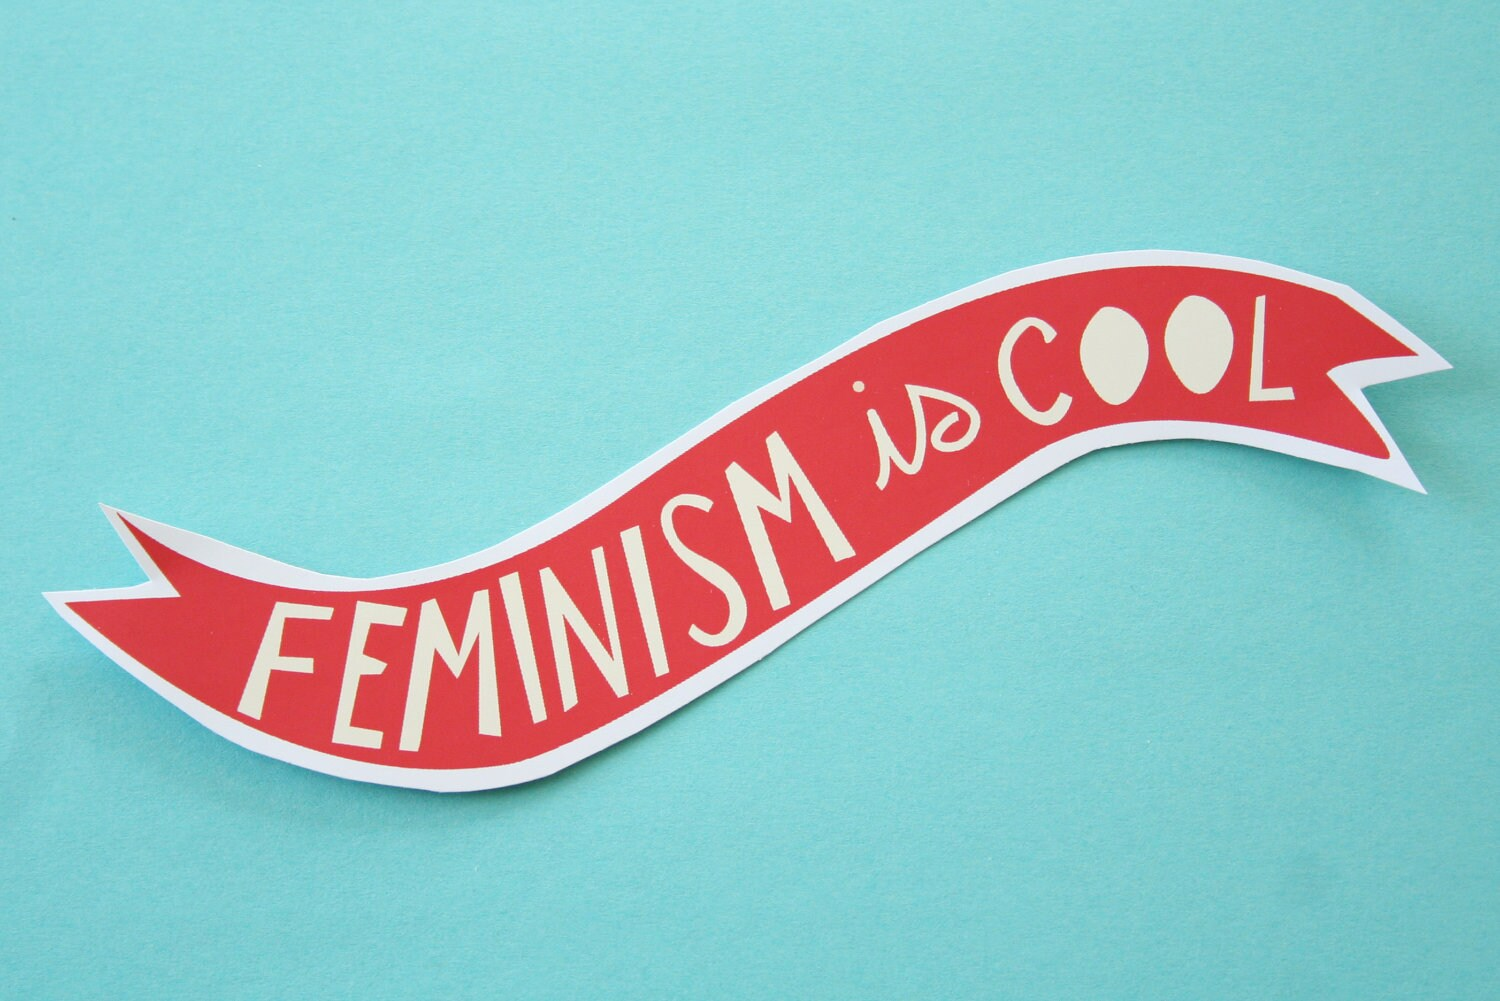 Feminism is Cool Red Banner Sticker